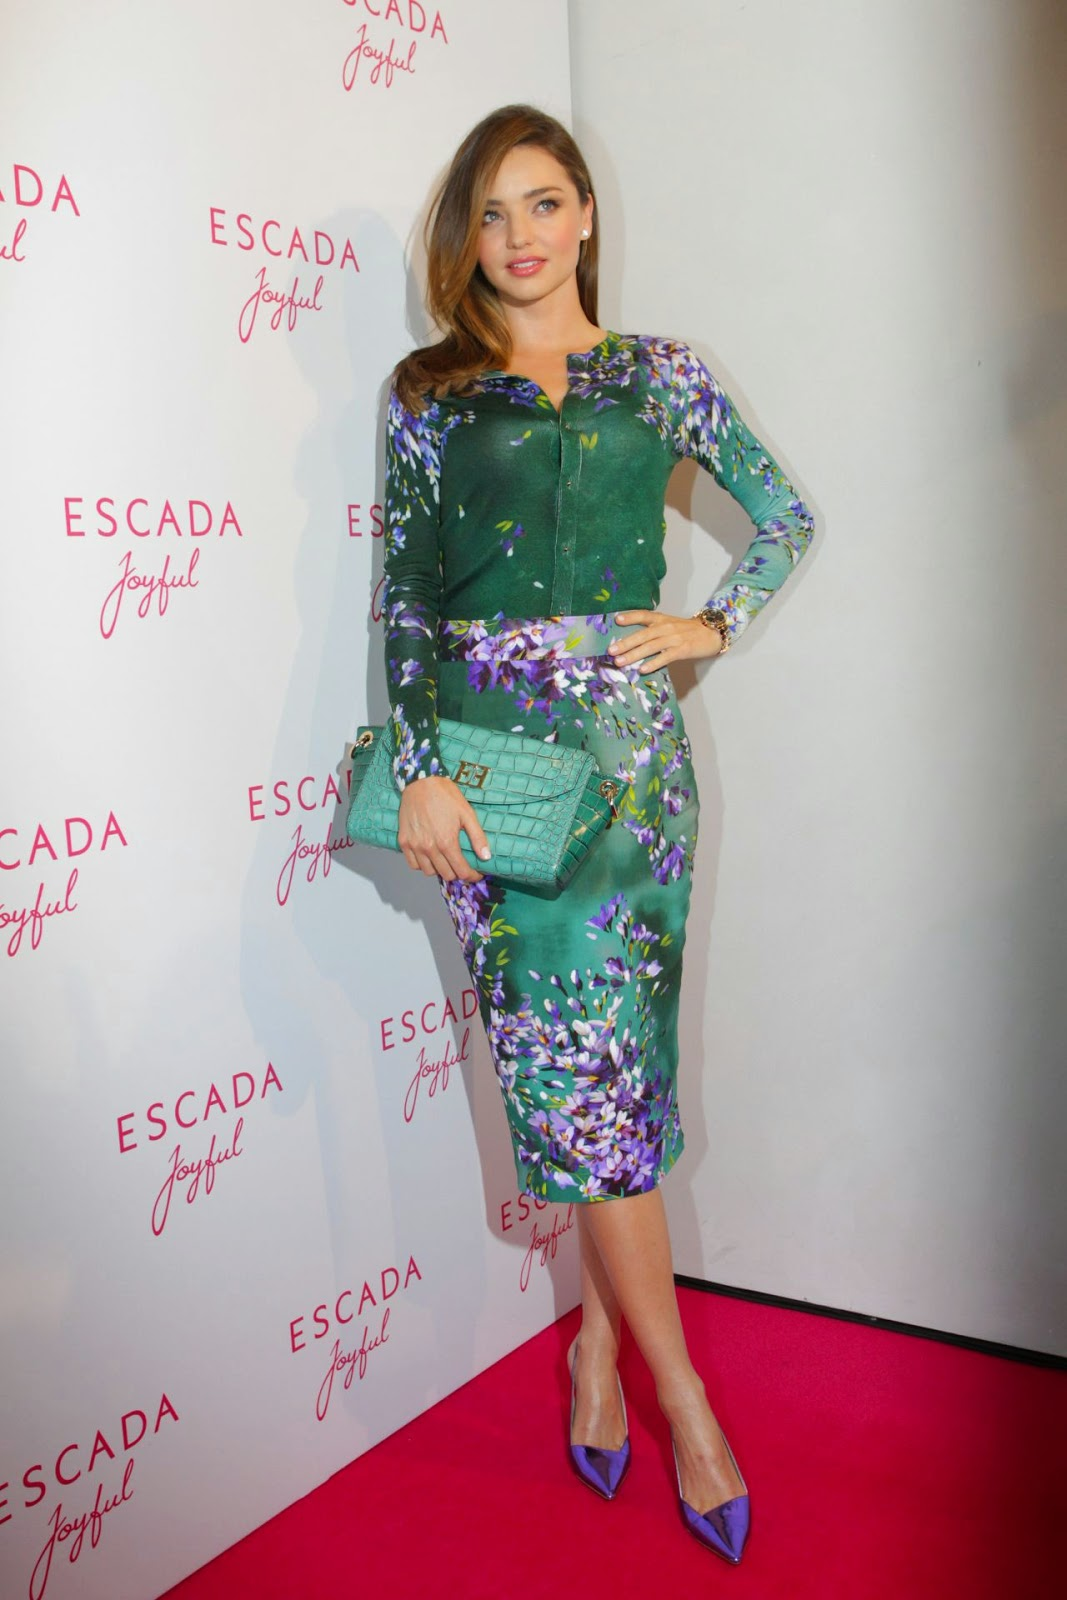 Miranda Kerr stuns in a floral printed dress at 'Escada Joyful' event in Munich